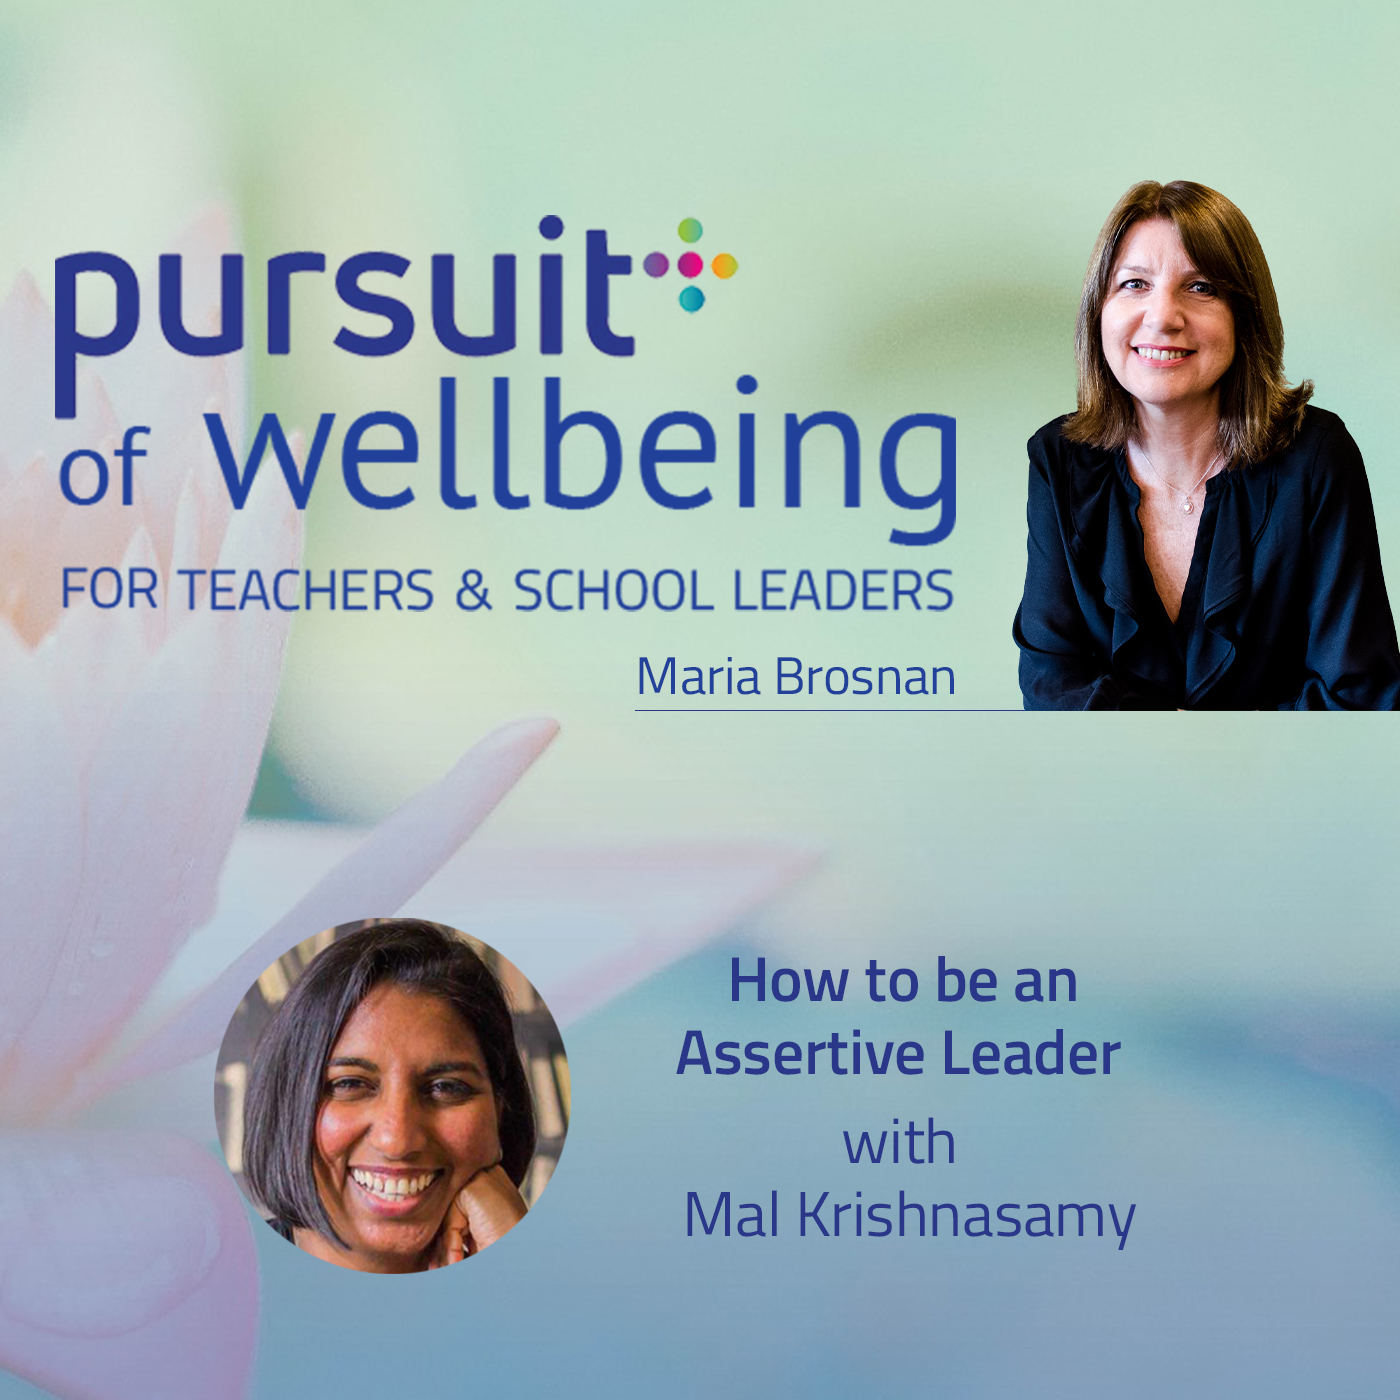 How to be an Assertive Leader with Mal Krishnasamy